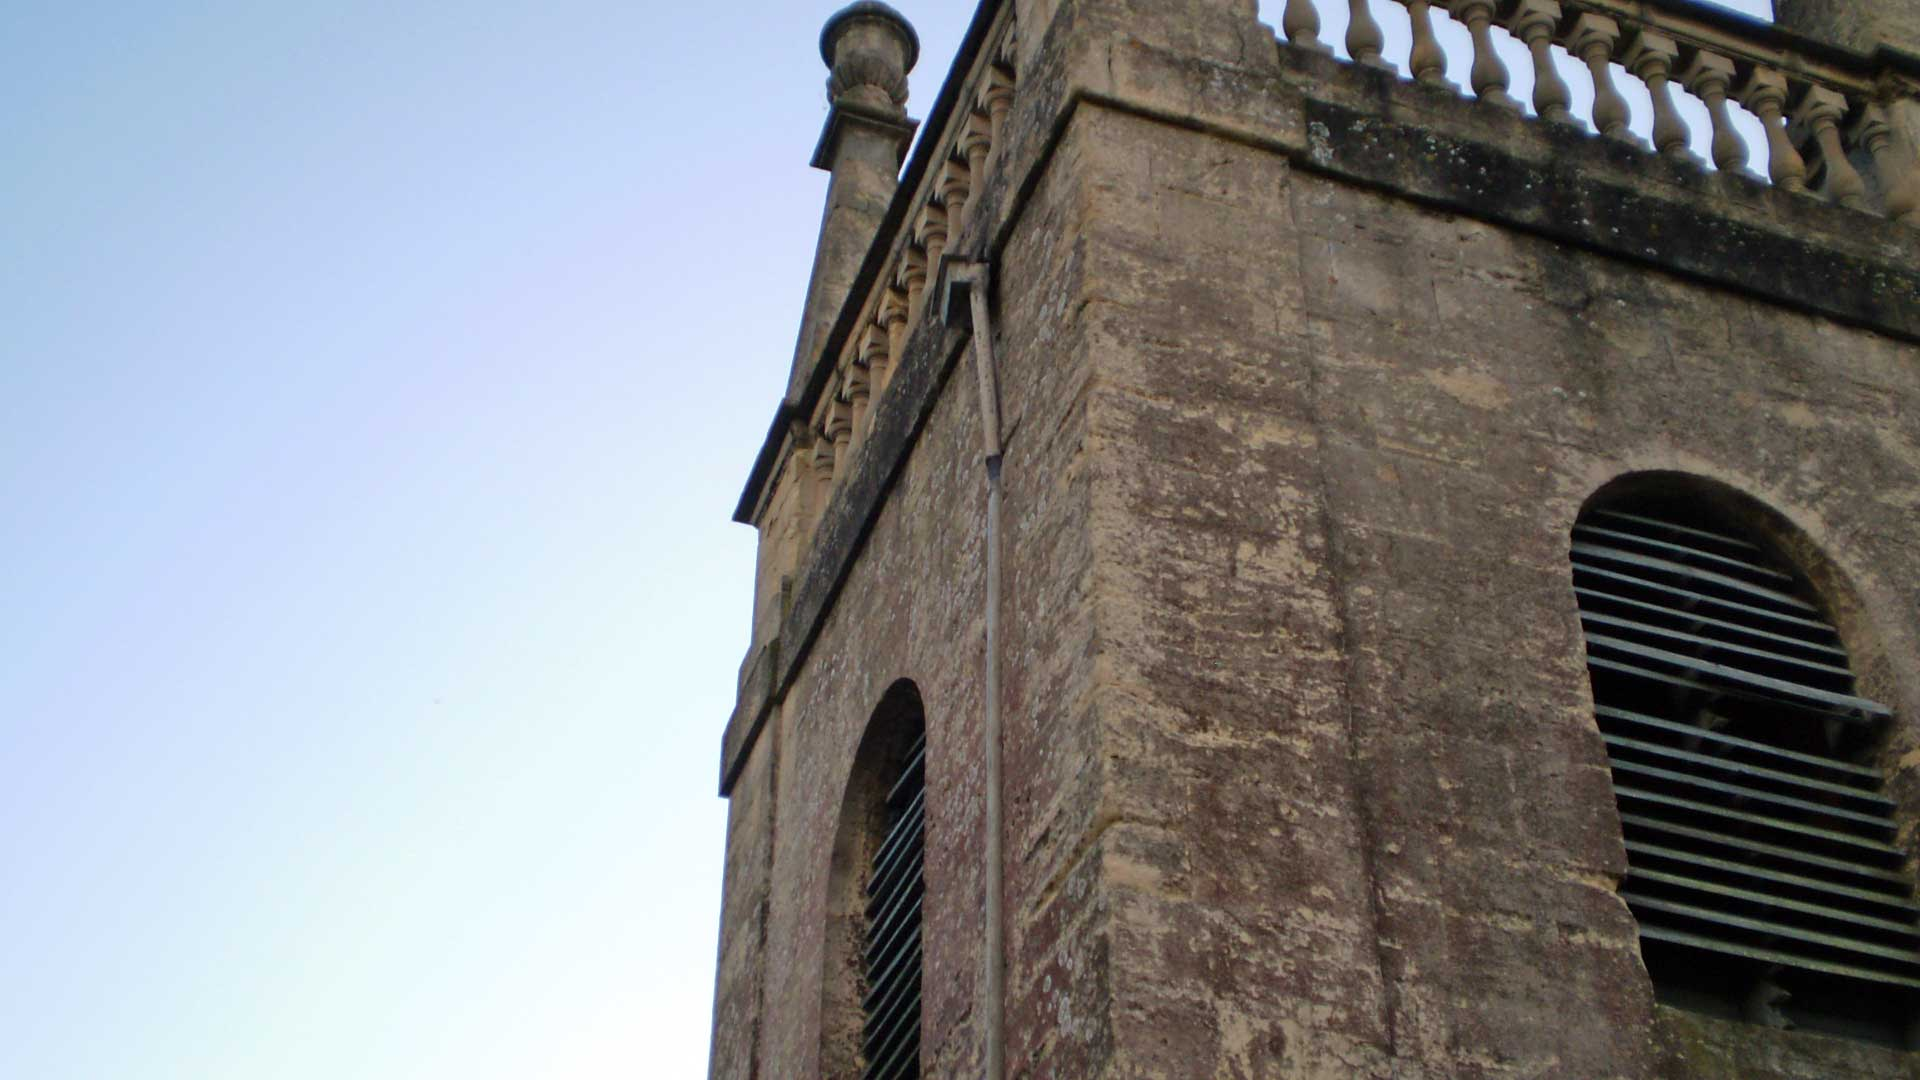 Damaged Drainpipe and Sound Louvres on the Tower